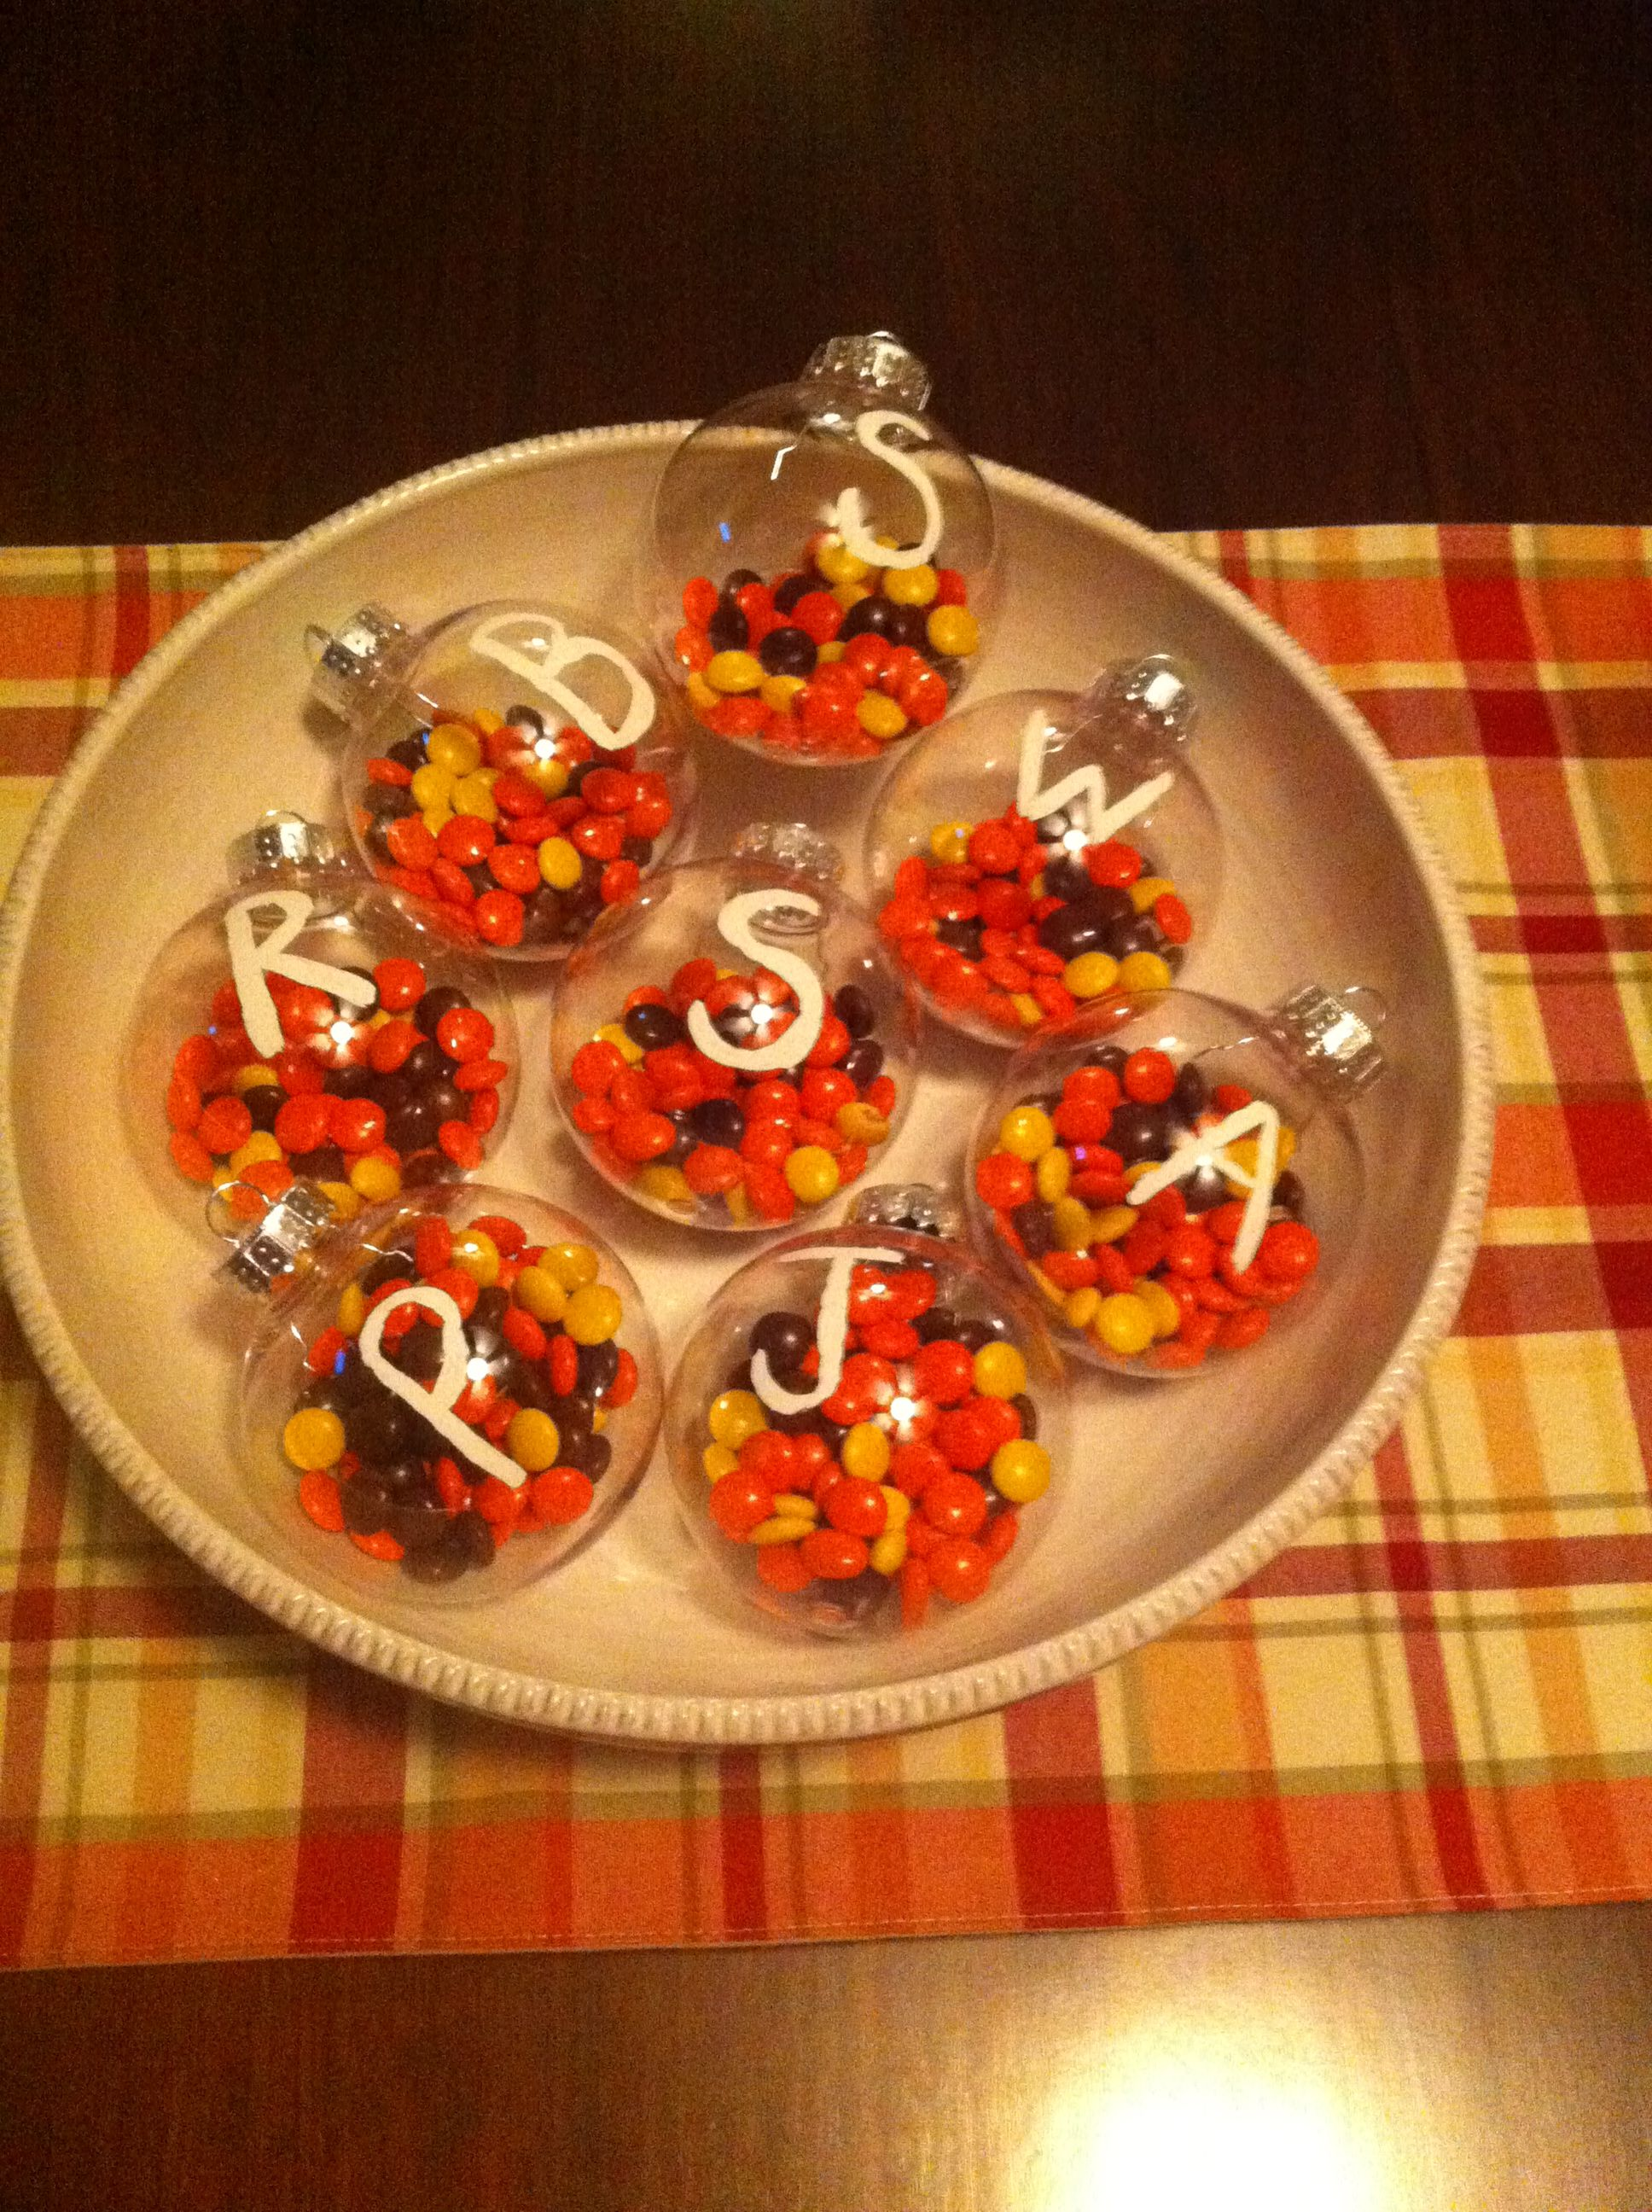 Christmas Colored Reese S Pieces With Walmart 88 Cents Ornaments A White Pen And Candy